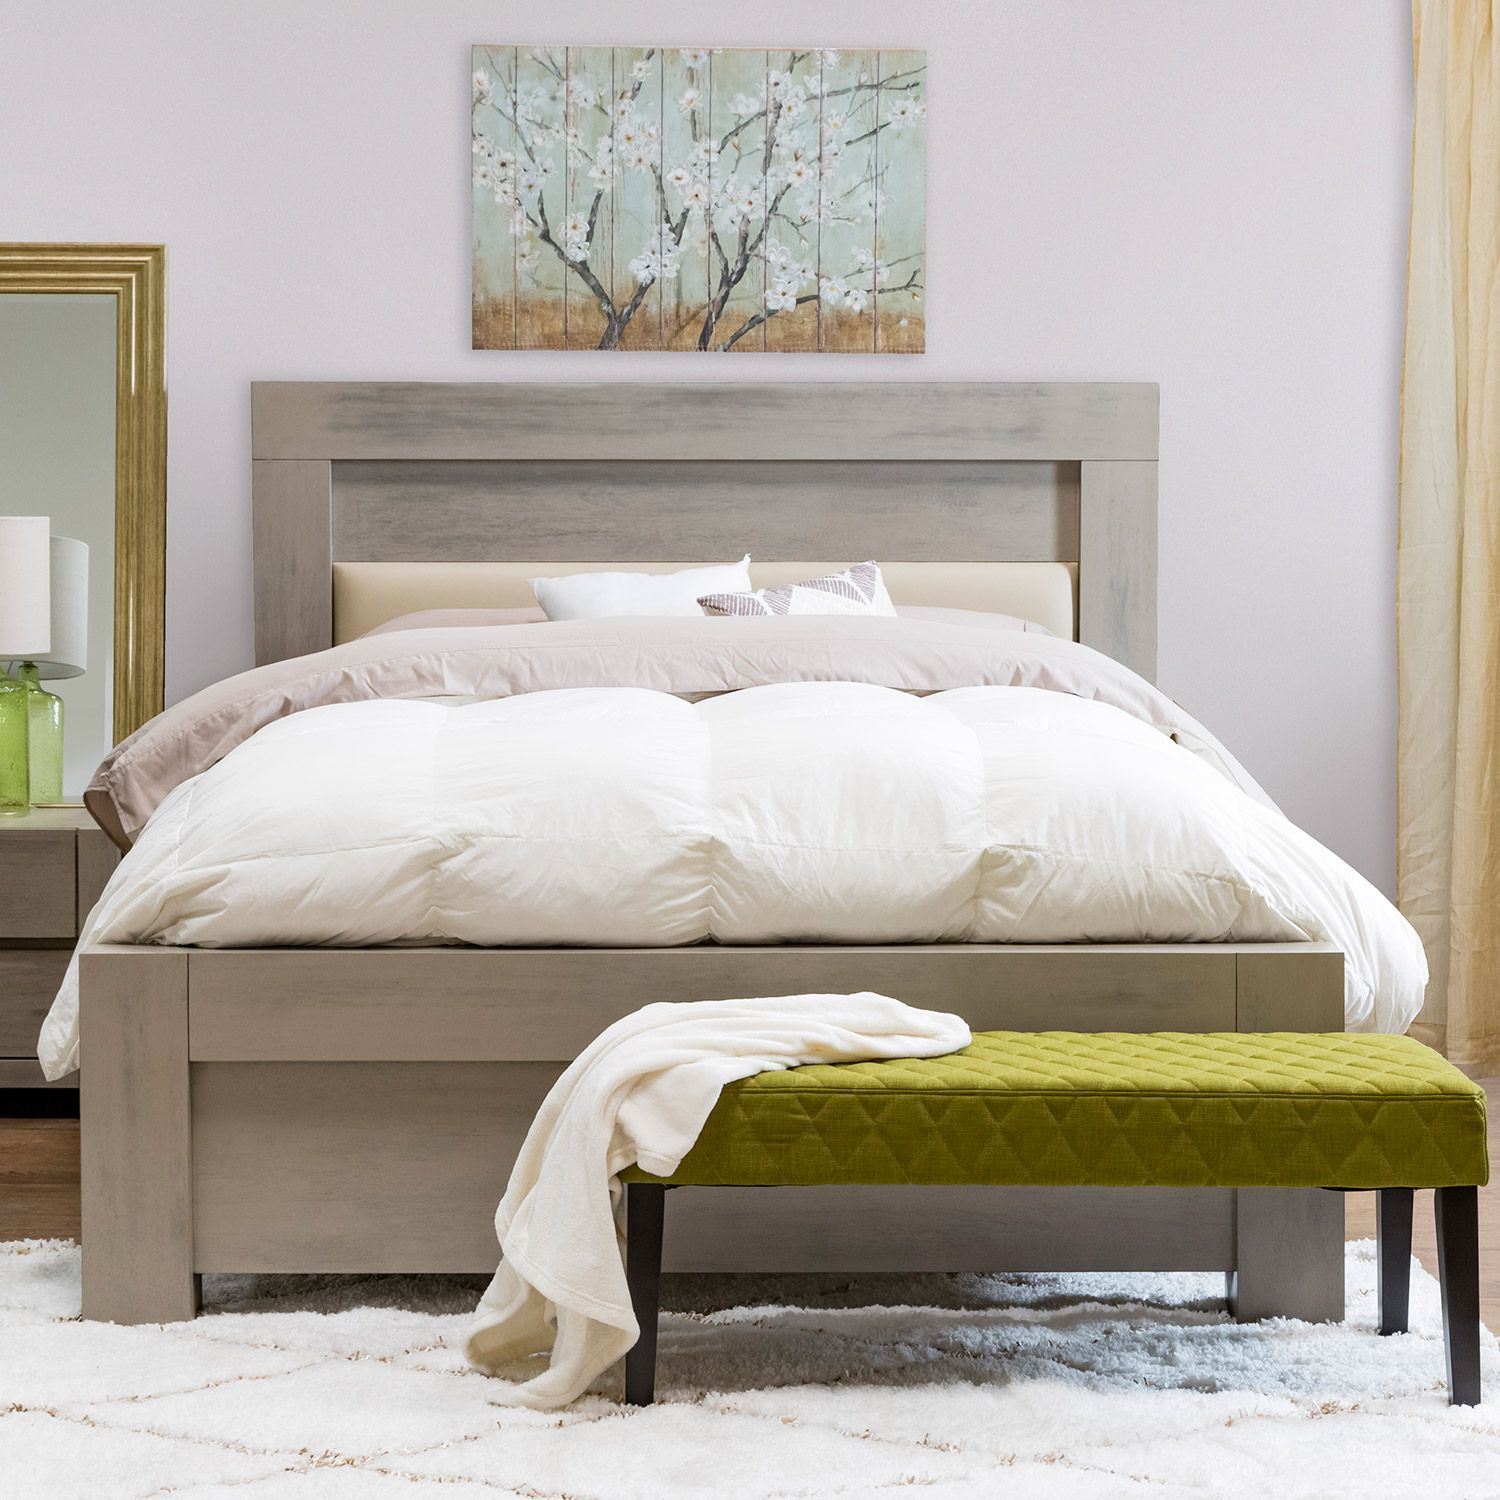 Liam Jazz Queen Bed Frame The Liam Jazz S Light Wood Color Brings A Sense Of Peace And Tranquility Pair With The Liam Jazz Case Queen Bed Frame Bed Frame Bed